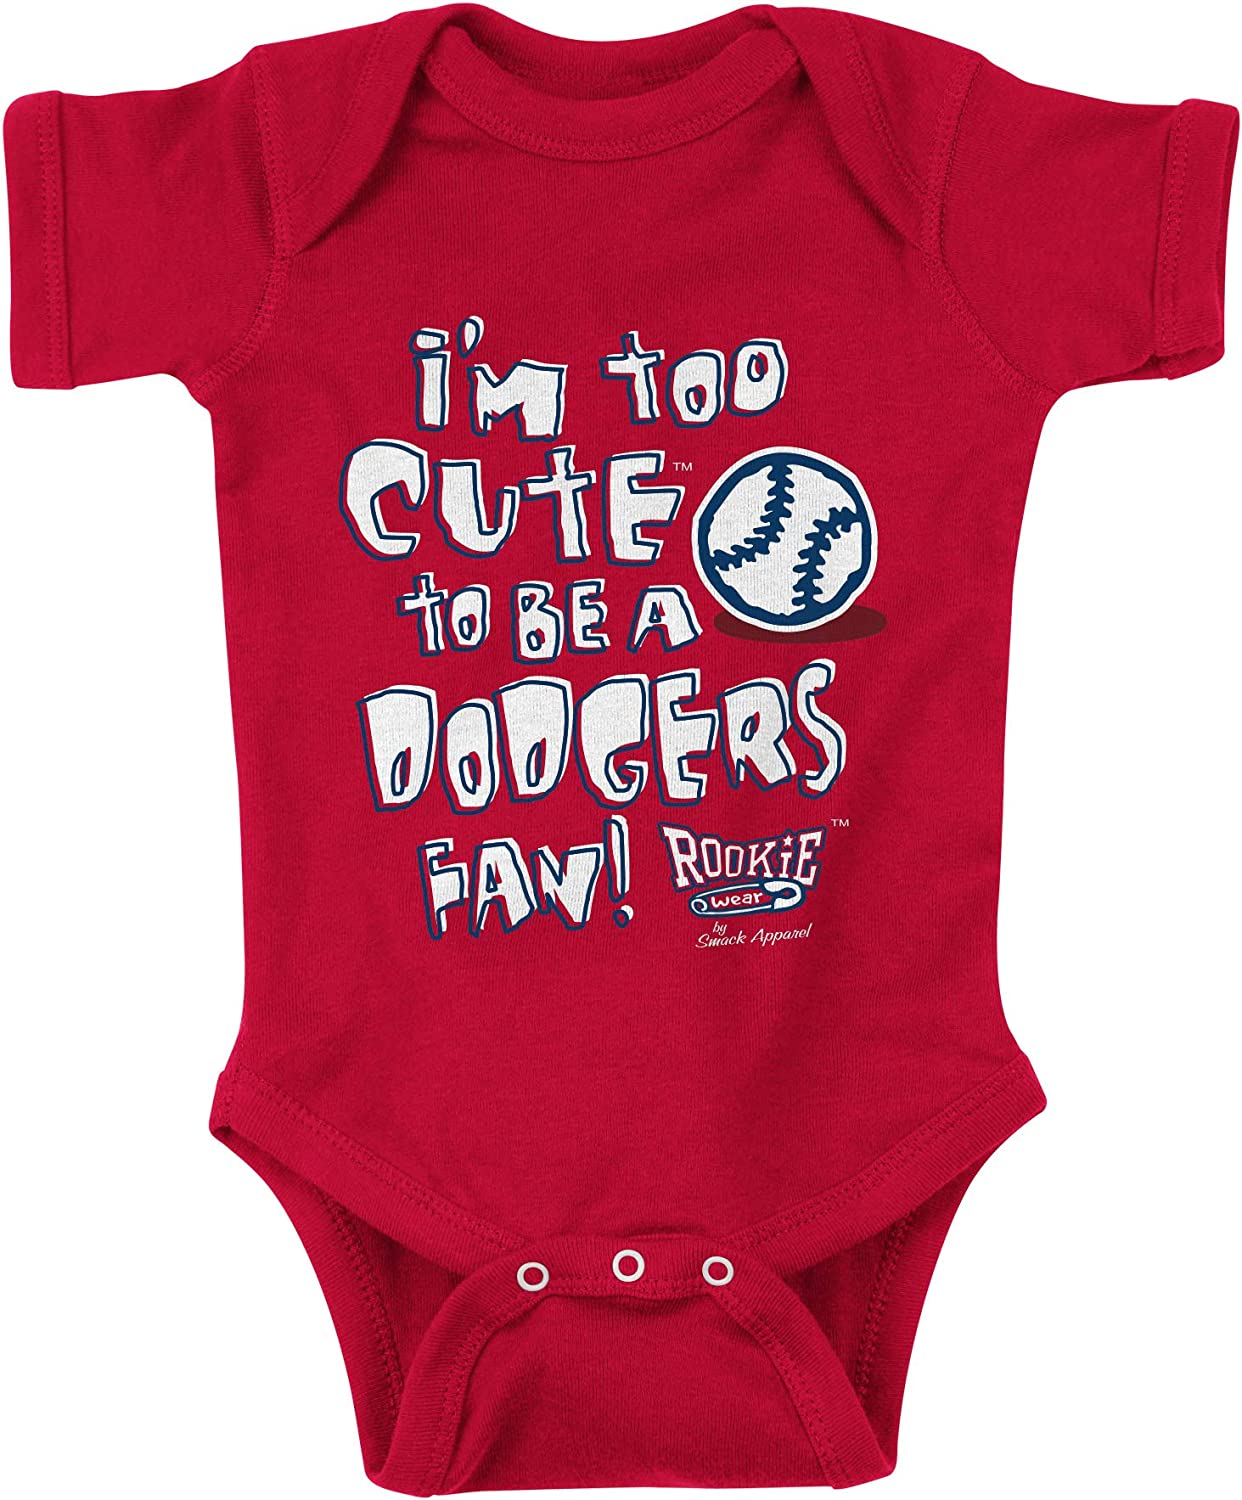 Rookie Wear By Smack Apparel Los Angeles Baseball Fans Too Cute to be a Dodgers Fan Red Onesie or Toddler Tee NB-4T